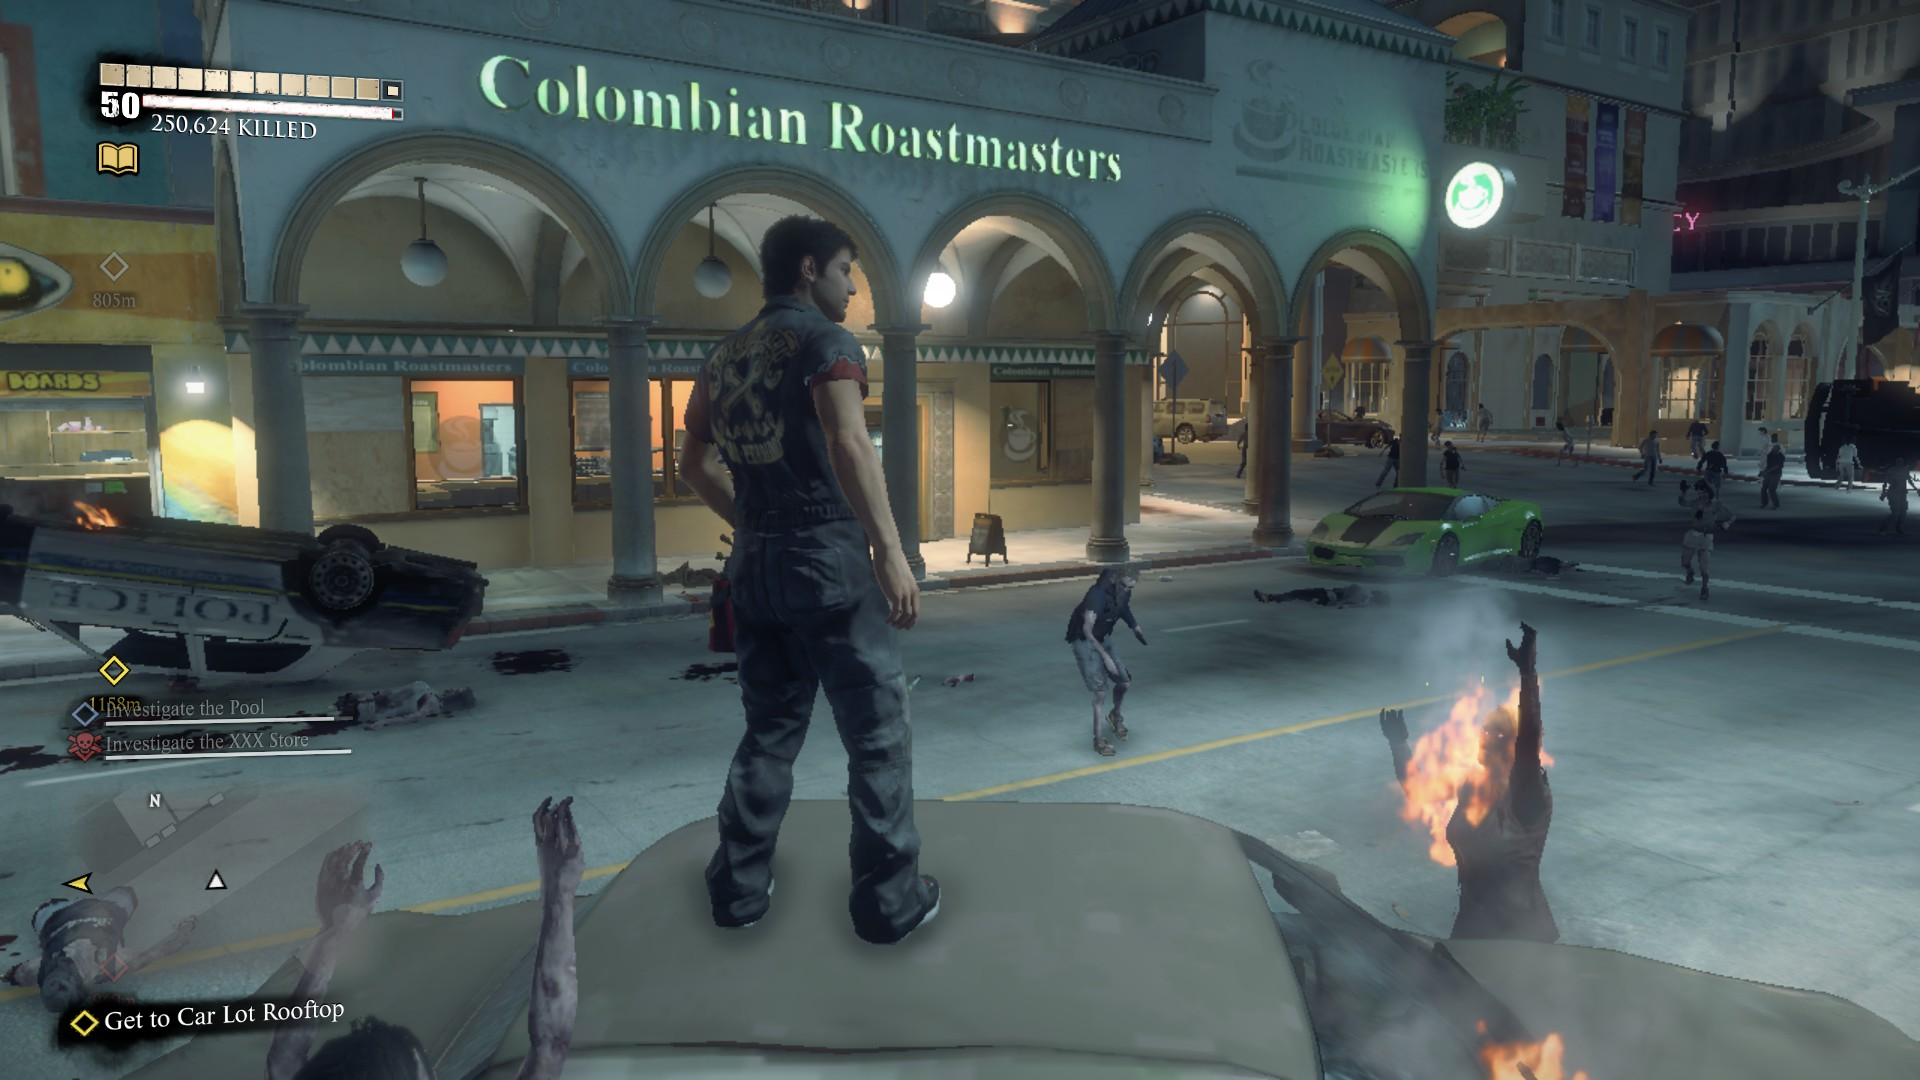 Colombian roastmasters dead rising 3 dead rising wiki fandom colombian roastmasters dead rising 3 malvernweather Image collections